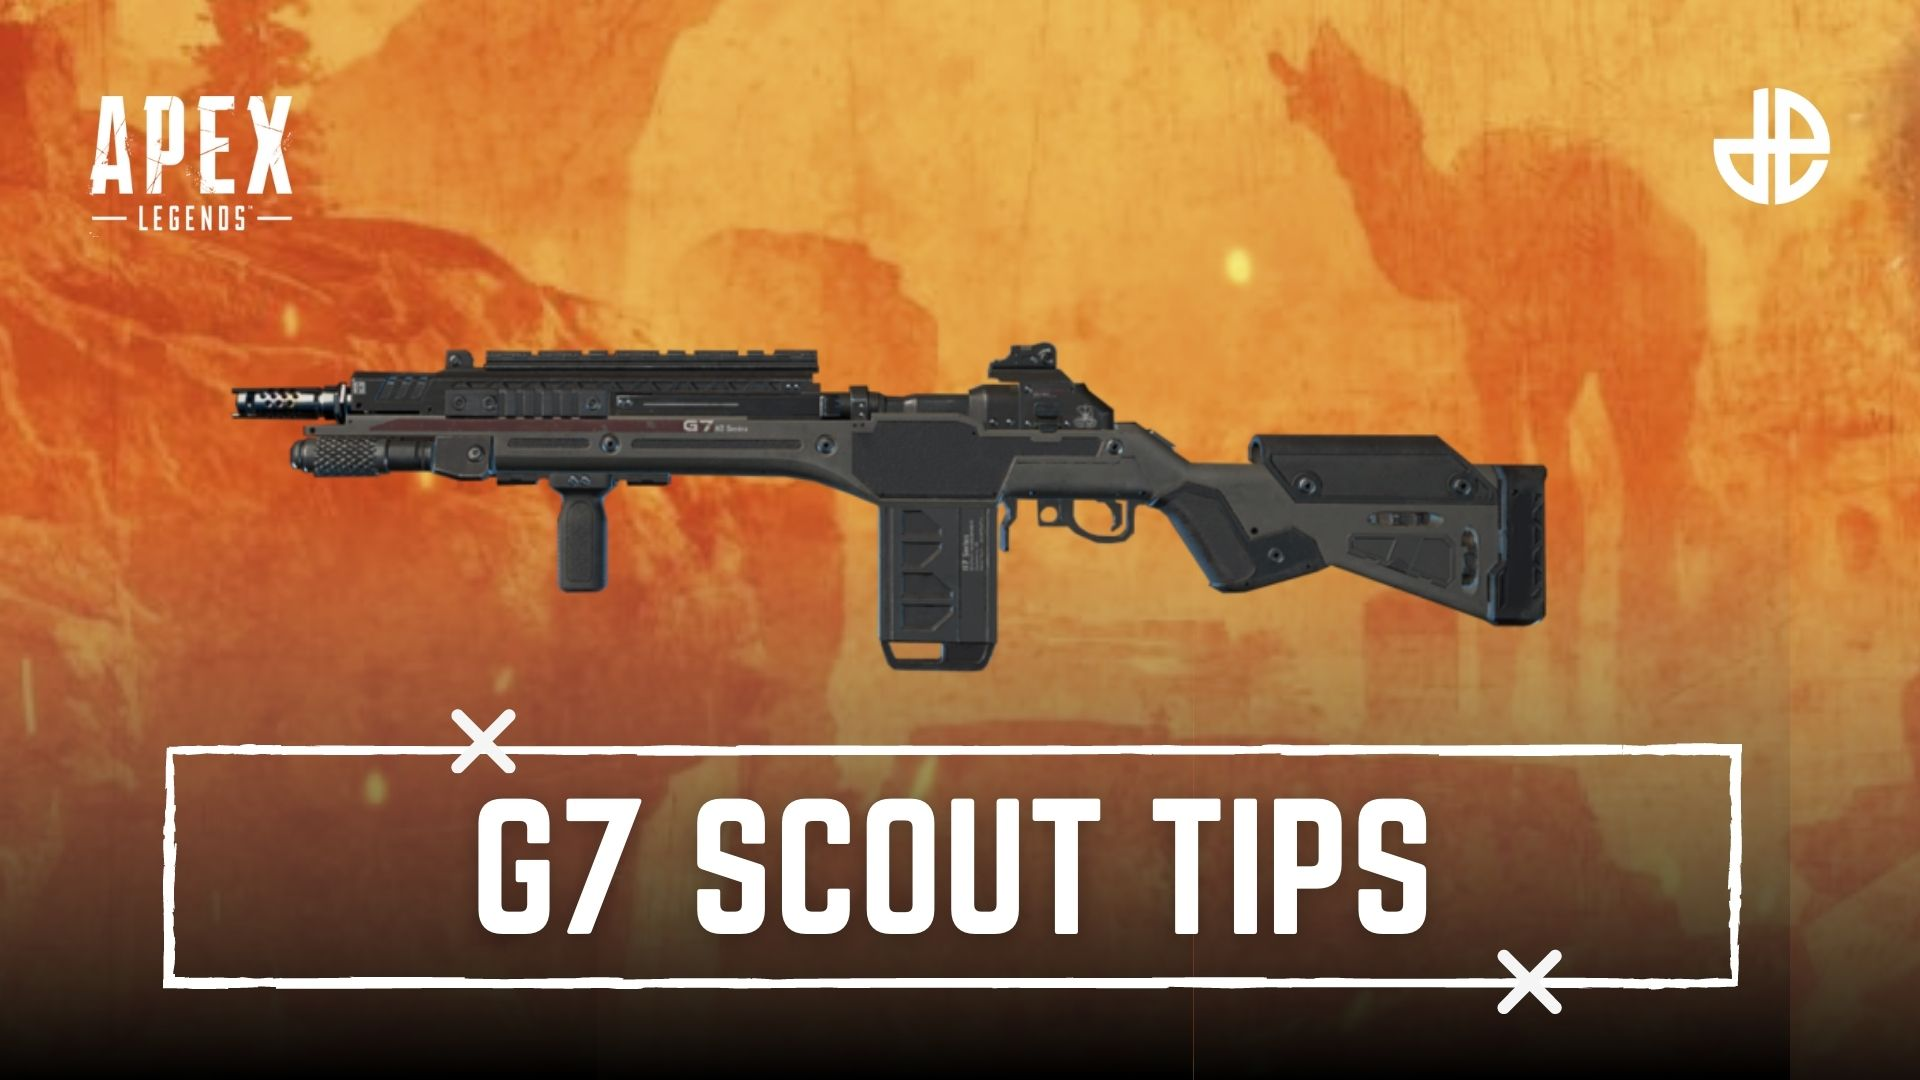 G7 Scout